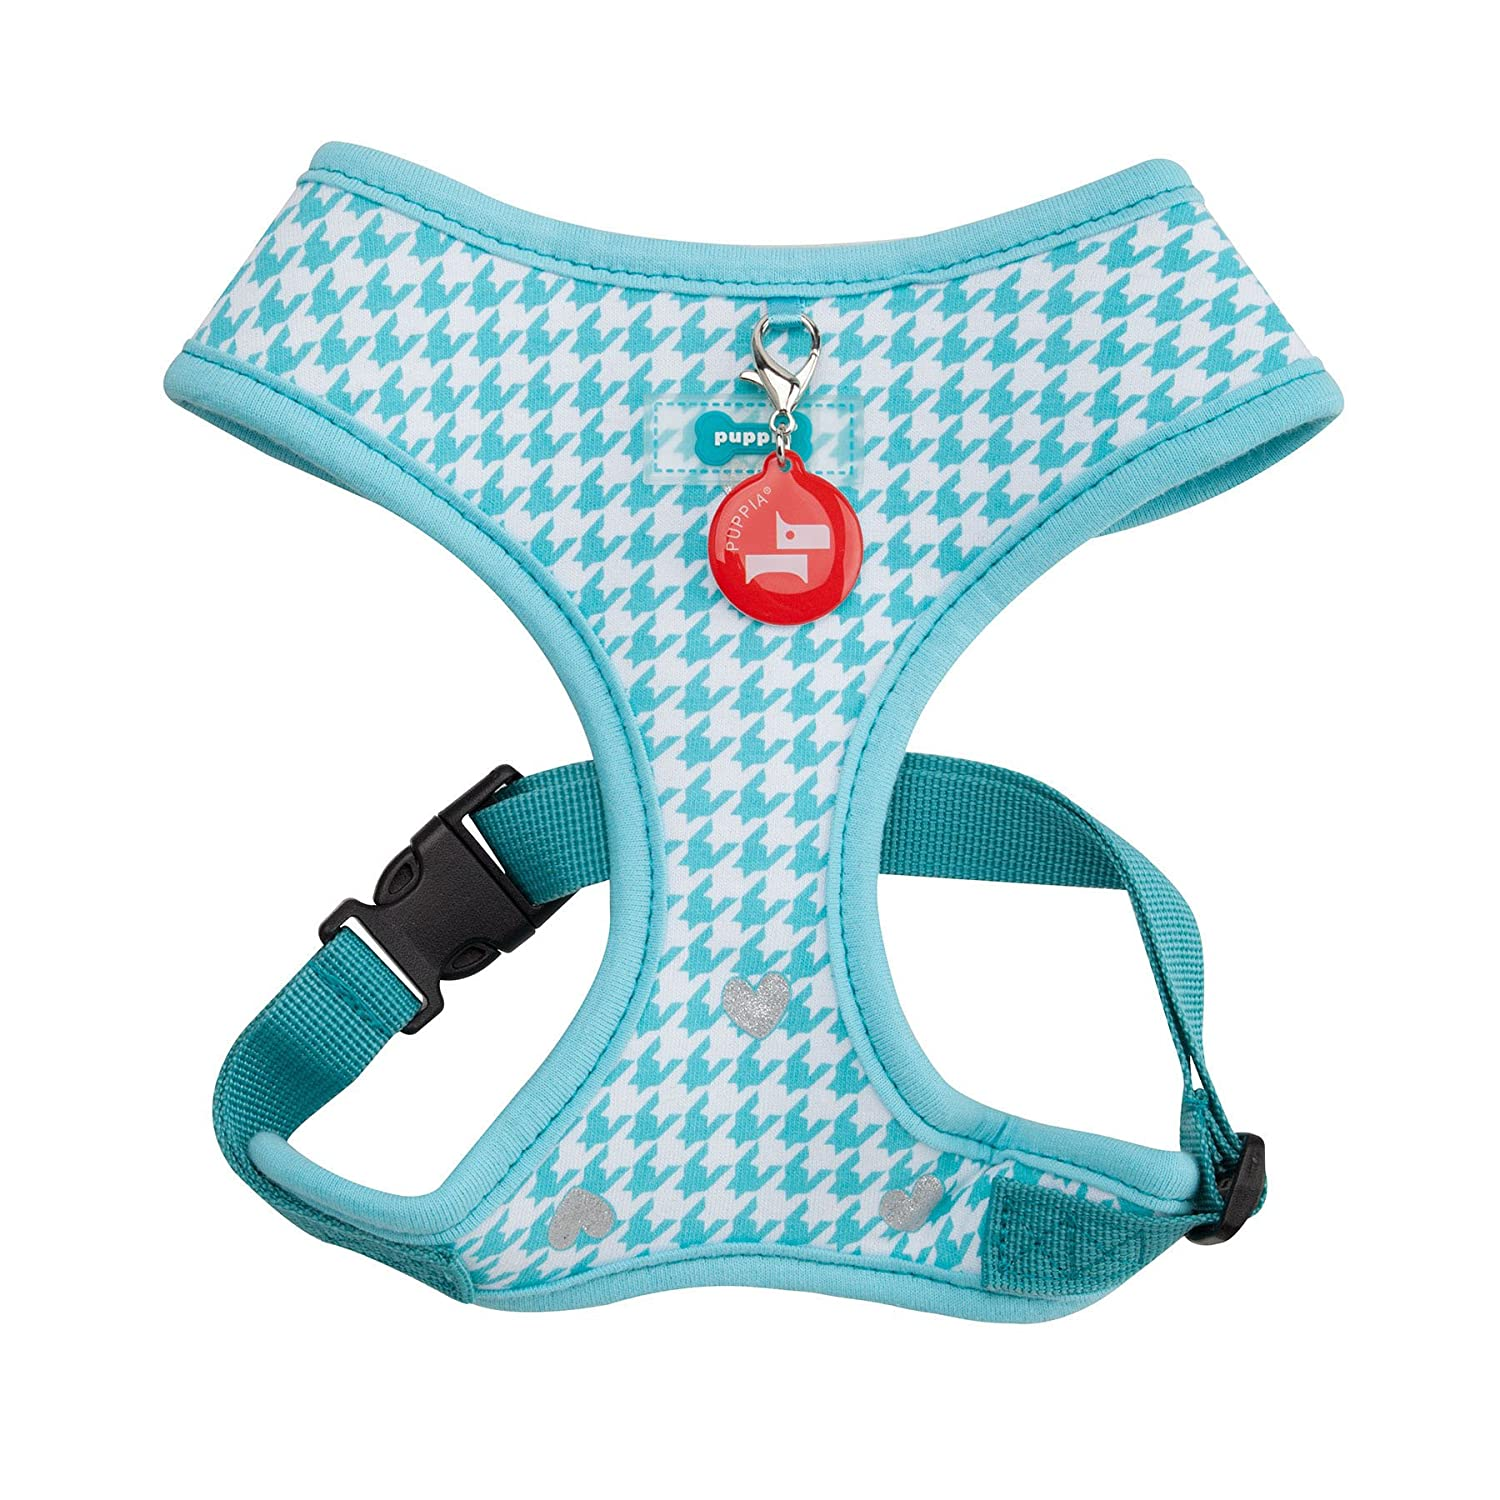 Aqua Large Aqua Large Puppia Authentic Aggie Harness A, Large, Aqua